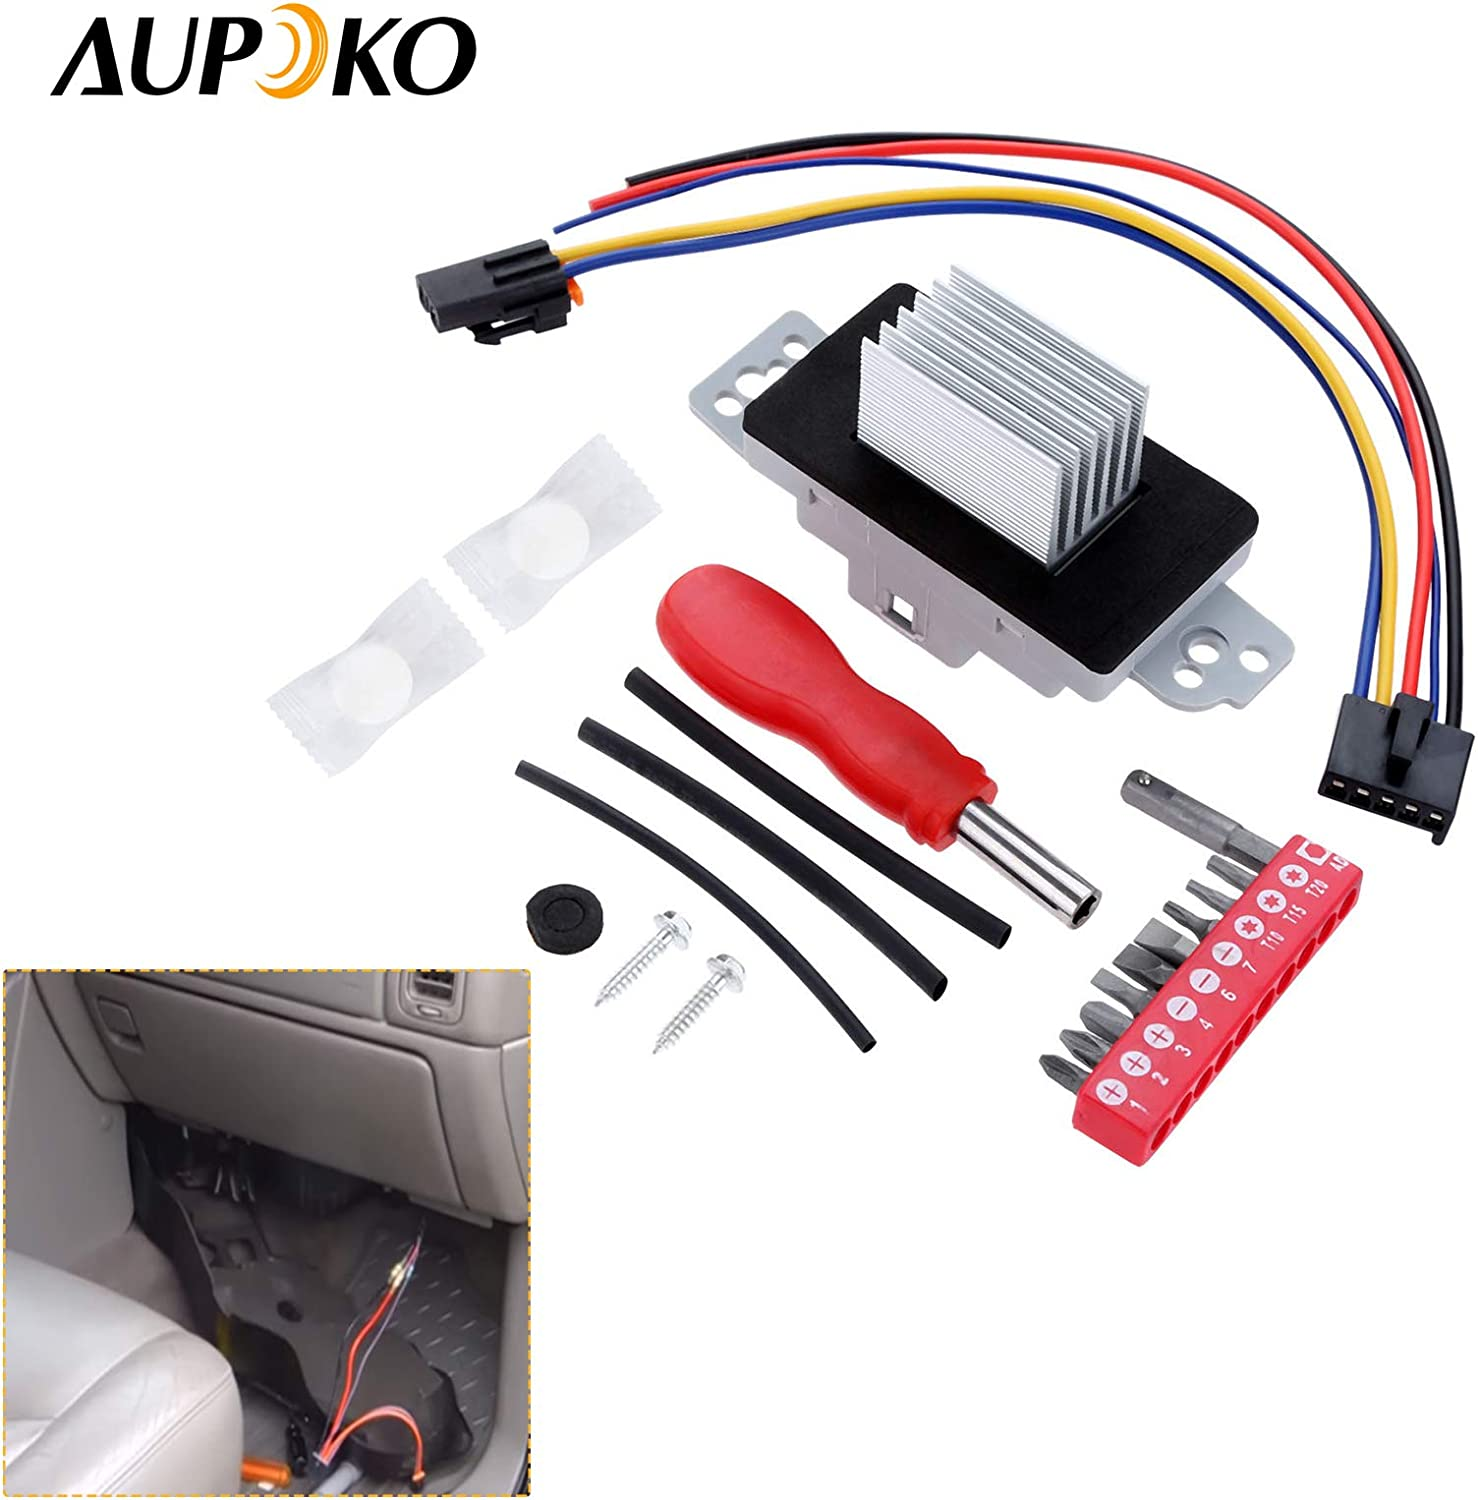 Aupoko 89018778 Blower Motor Resistor Complete Kit with Harness 89019351 89019351,19260762,15-80567 AC Blower Motor Resistor Kit Replaces 15-81773 Fits for Buick Rainier Cadillac Chevrolet GMC